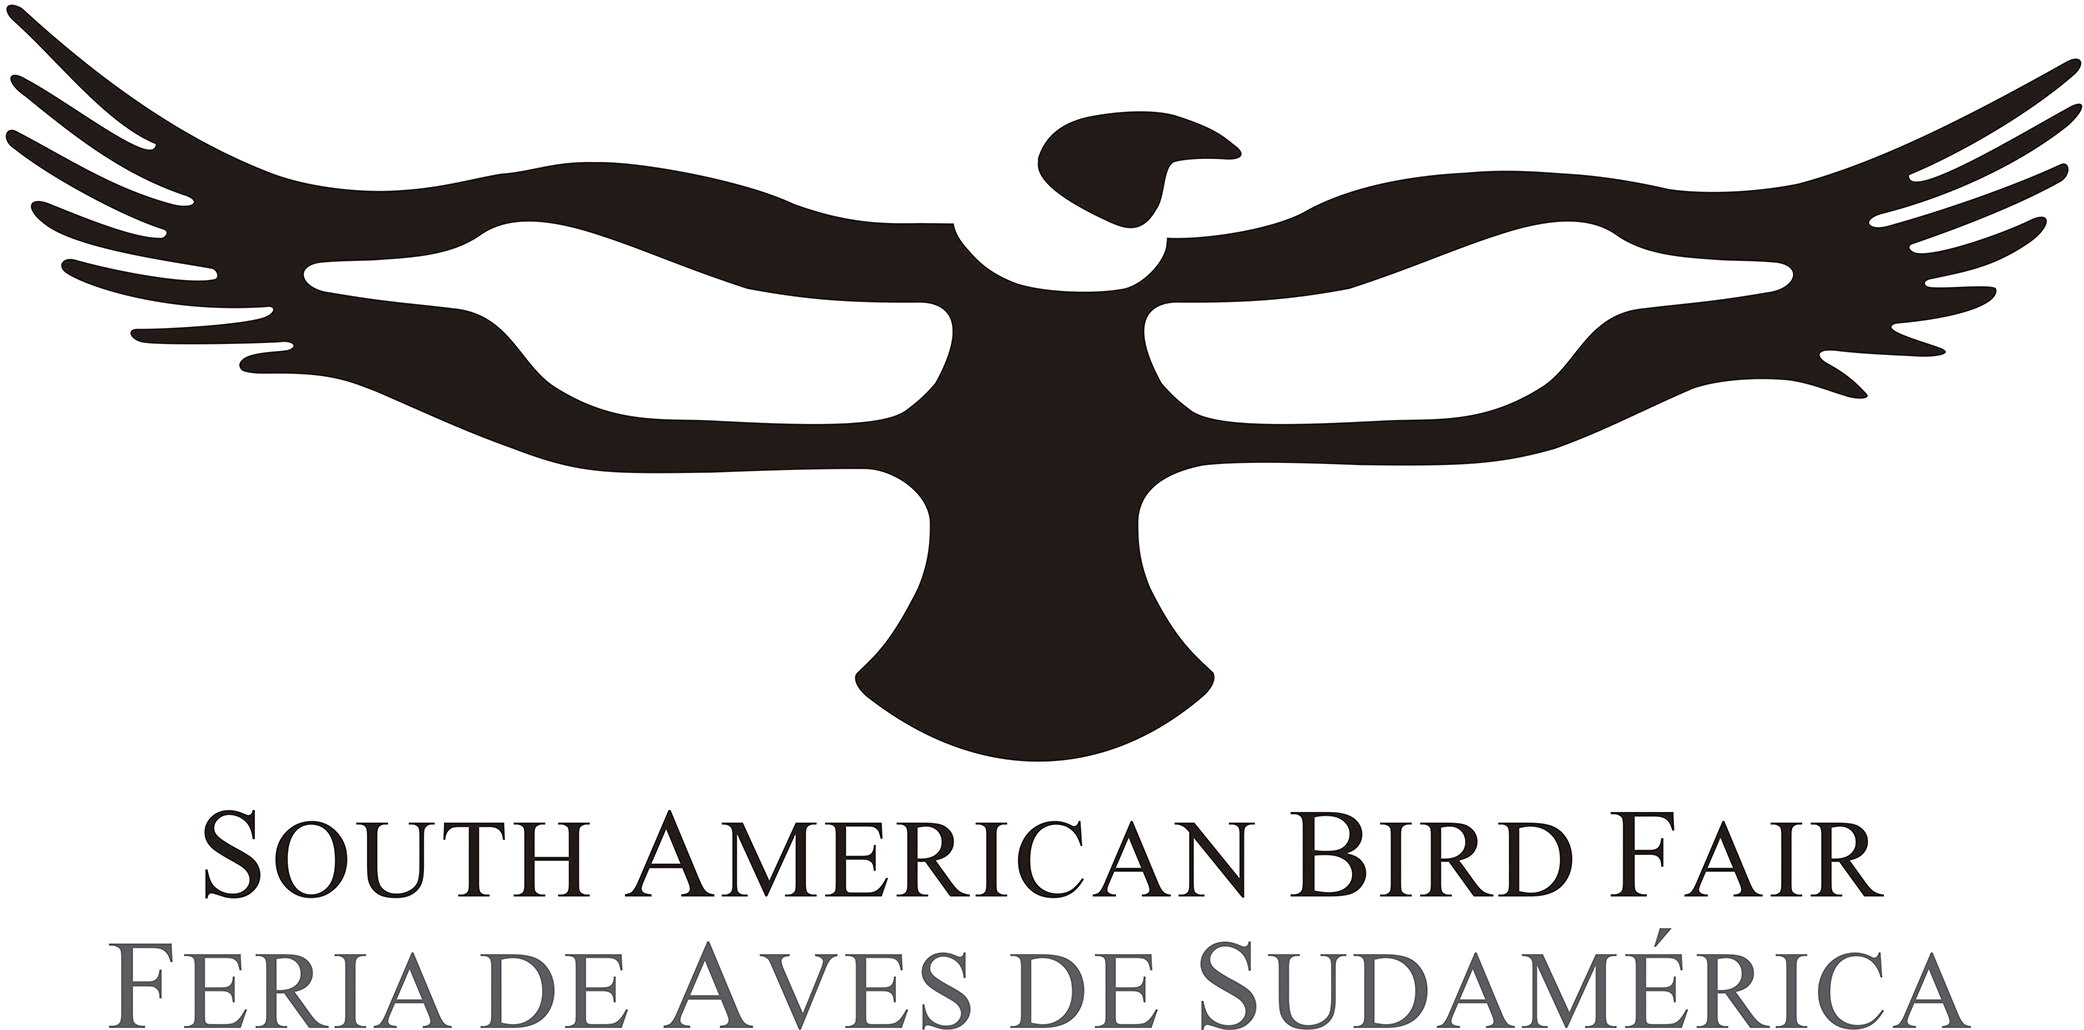 Feria de Aves de Sudamérica / South American Bird Fair